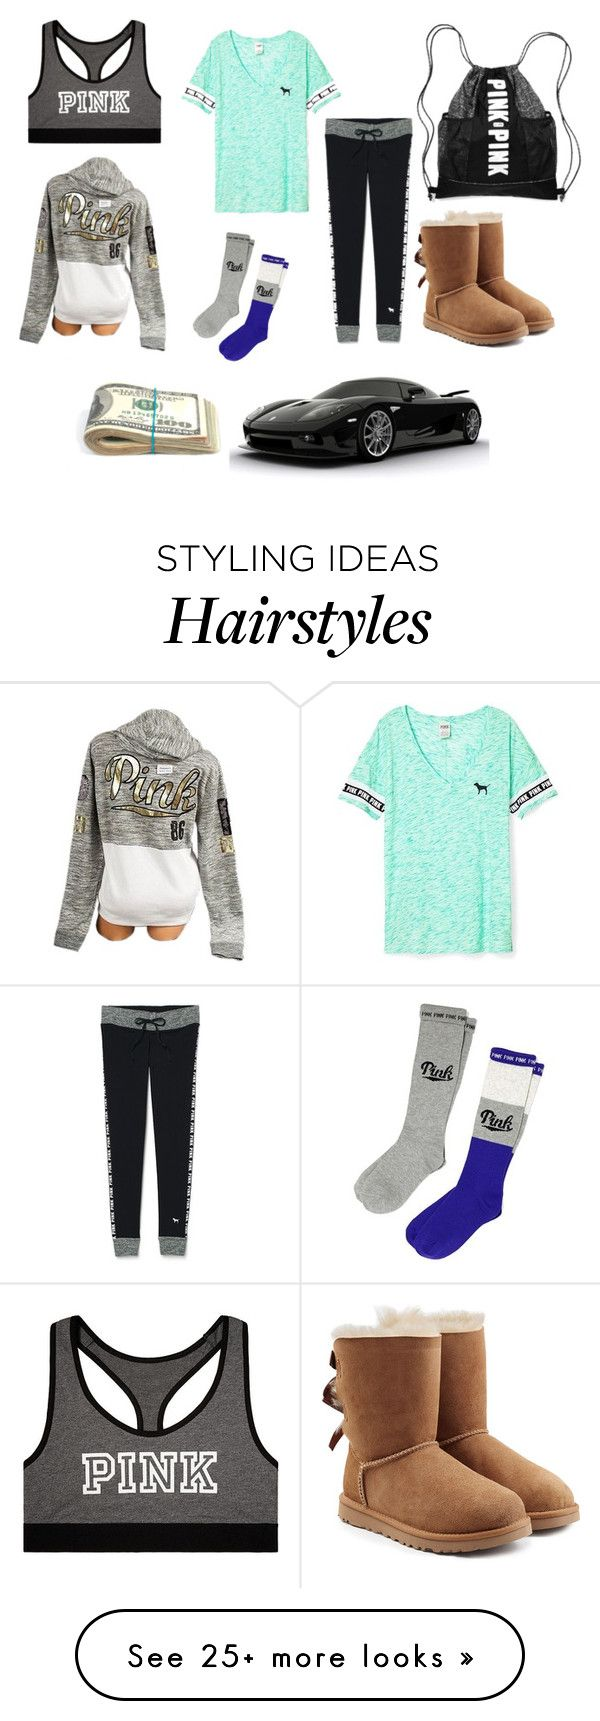 """""""Going to get a tattoo,hair dye, and piercings with Maddy"""" by rhino1021 on Polyvore featuring Victoria's Secret and UGG Australia"""